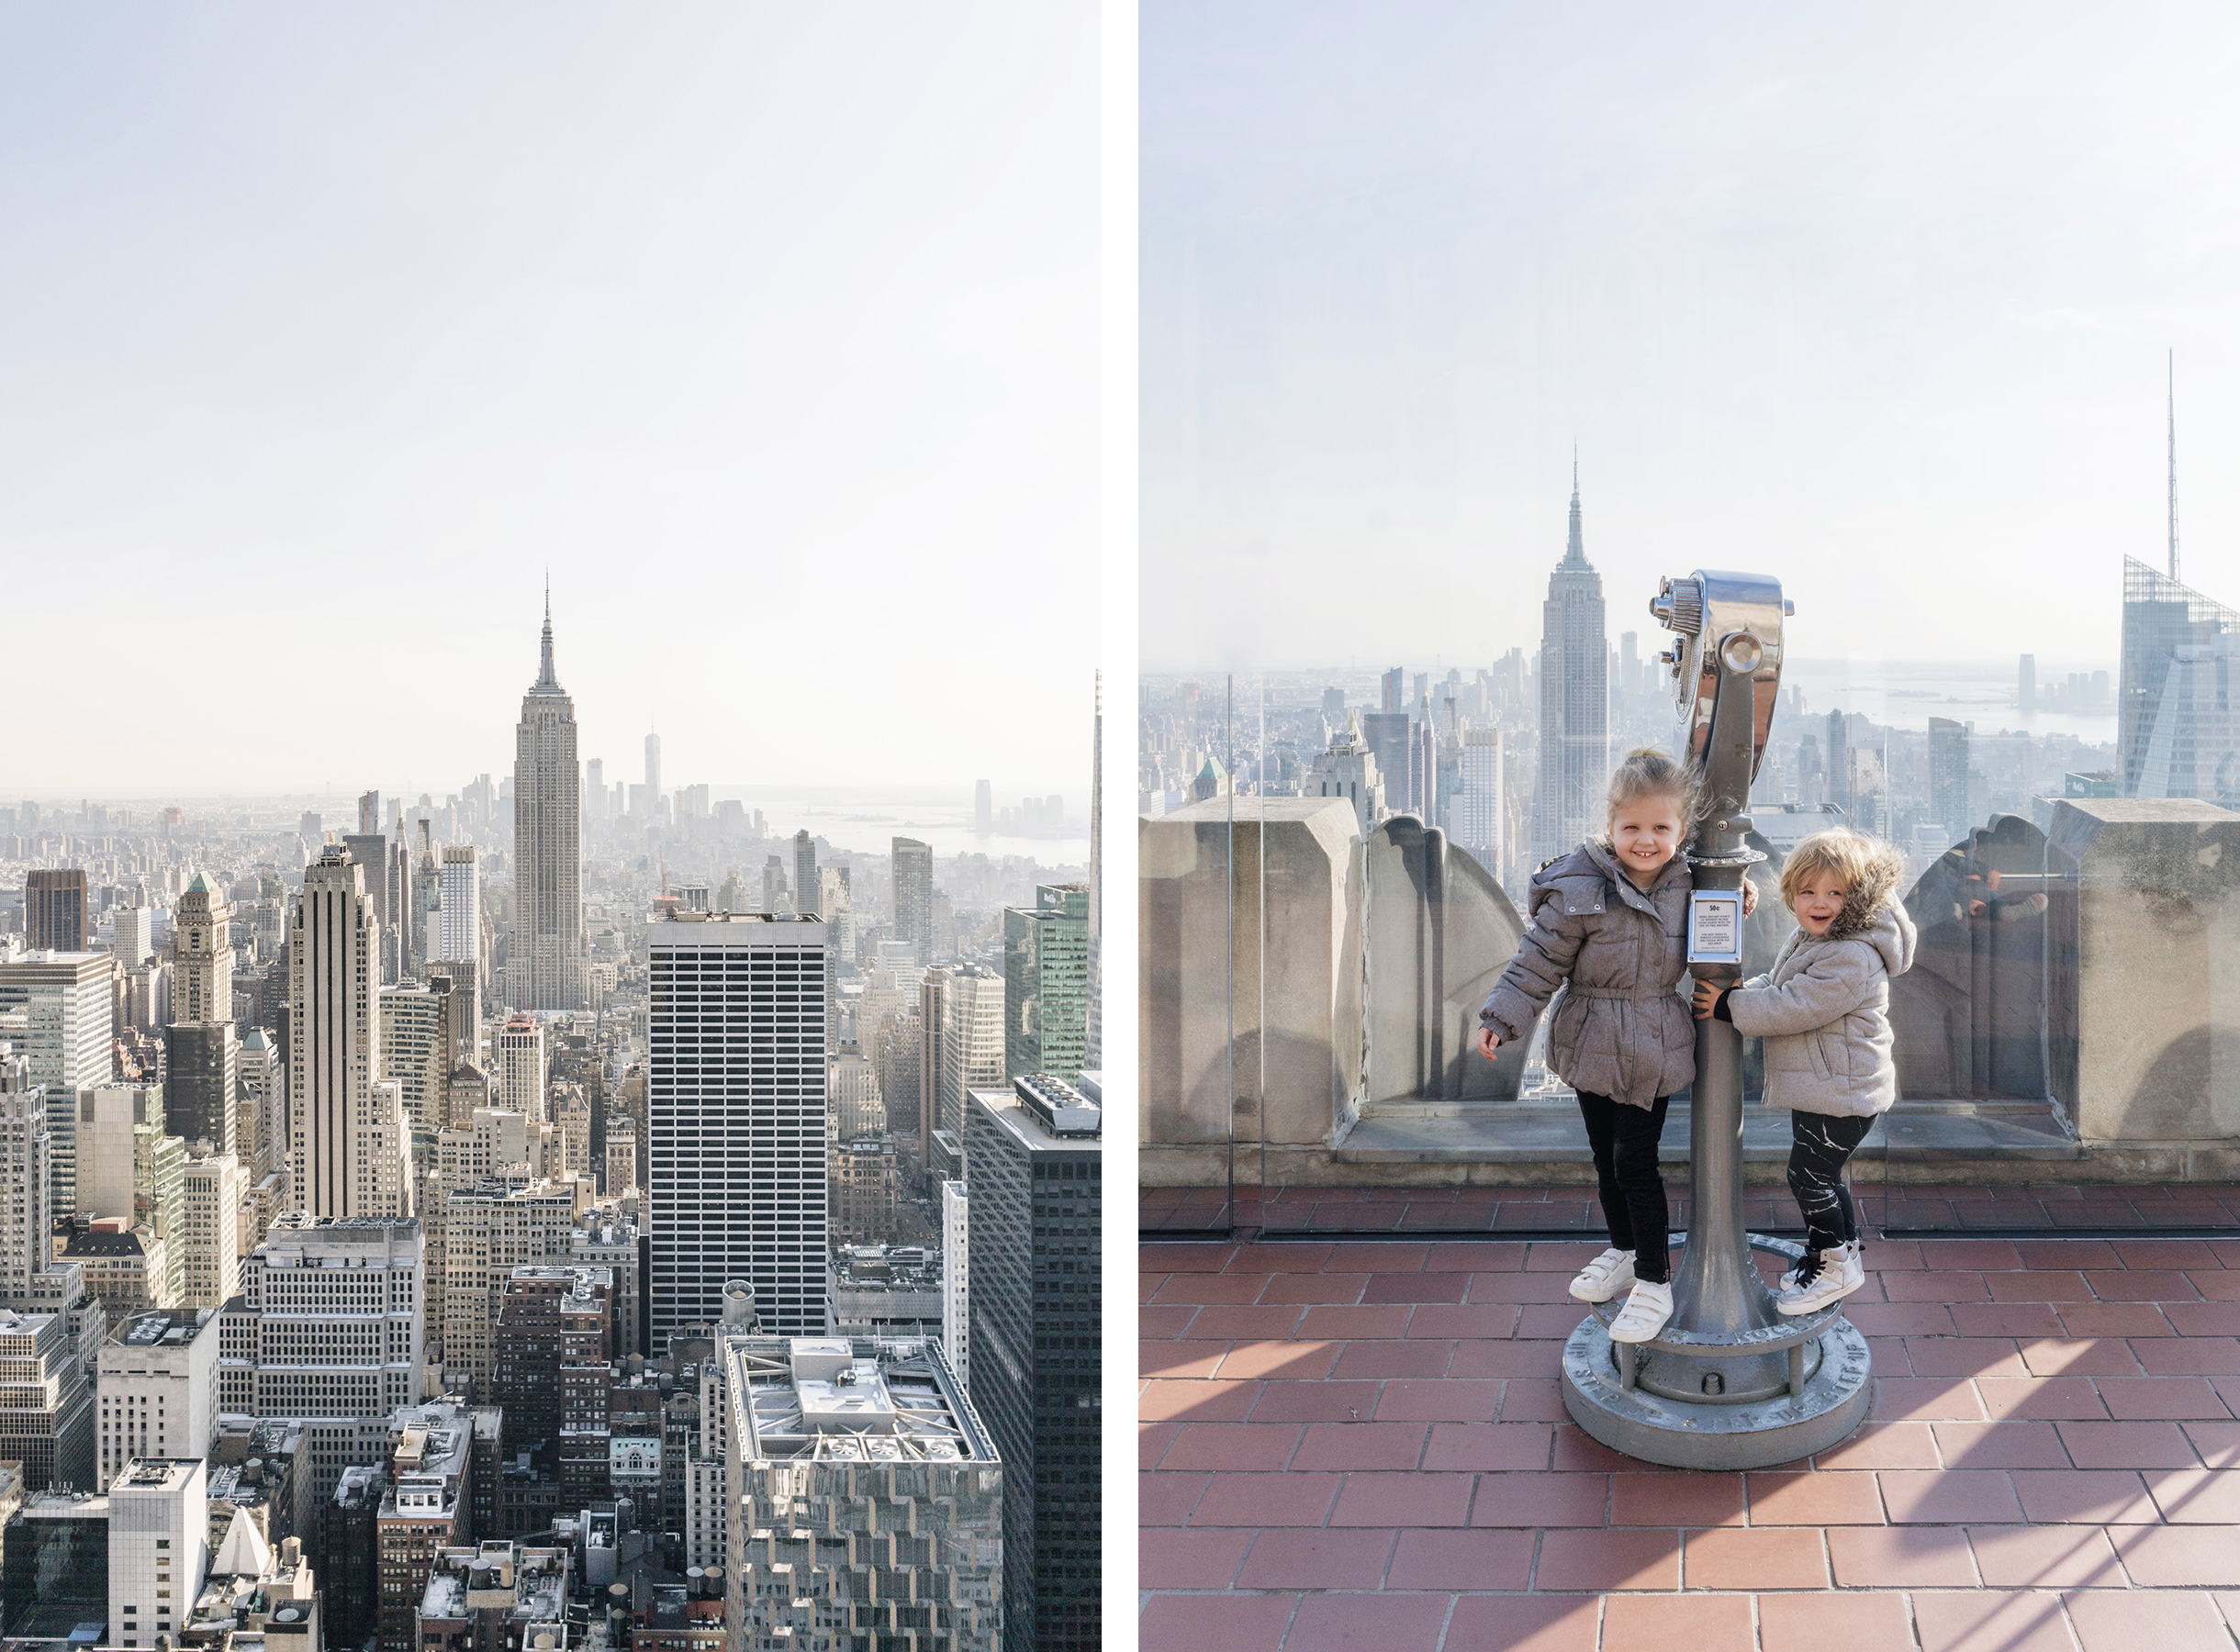 Top of the Rock - Top 10 things to do in NYC with young kids | New York City travel guide